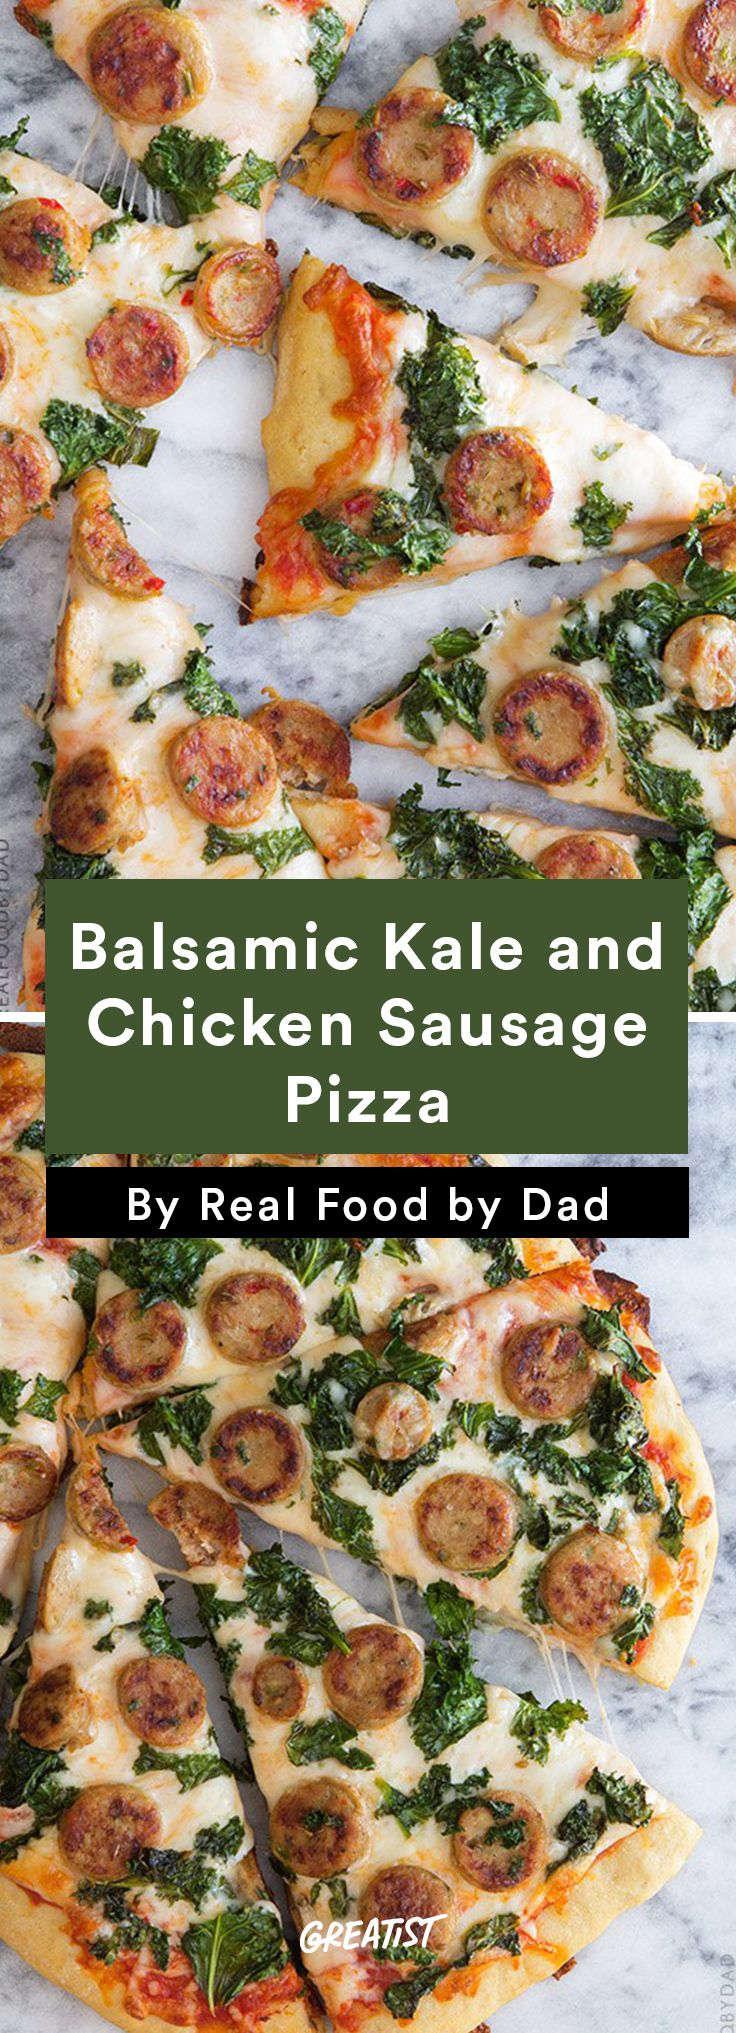 8 Healthier Pizza Recipes That Put Delivery To Shame Healthy Pizza Recipes Healthy Pizza Recipes Clean Eating Easy Healthy Pizza